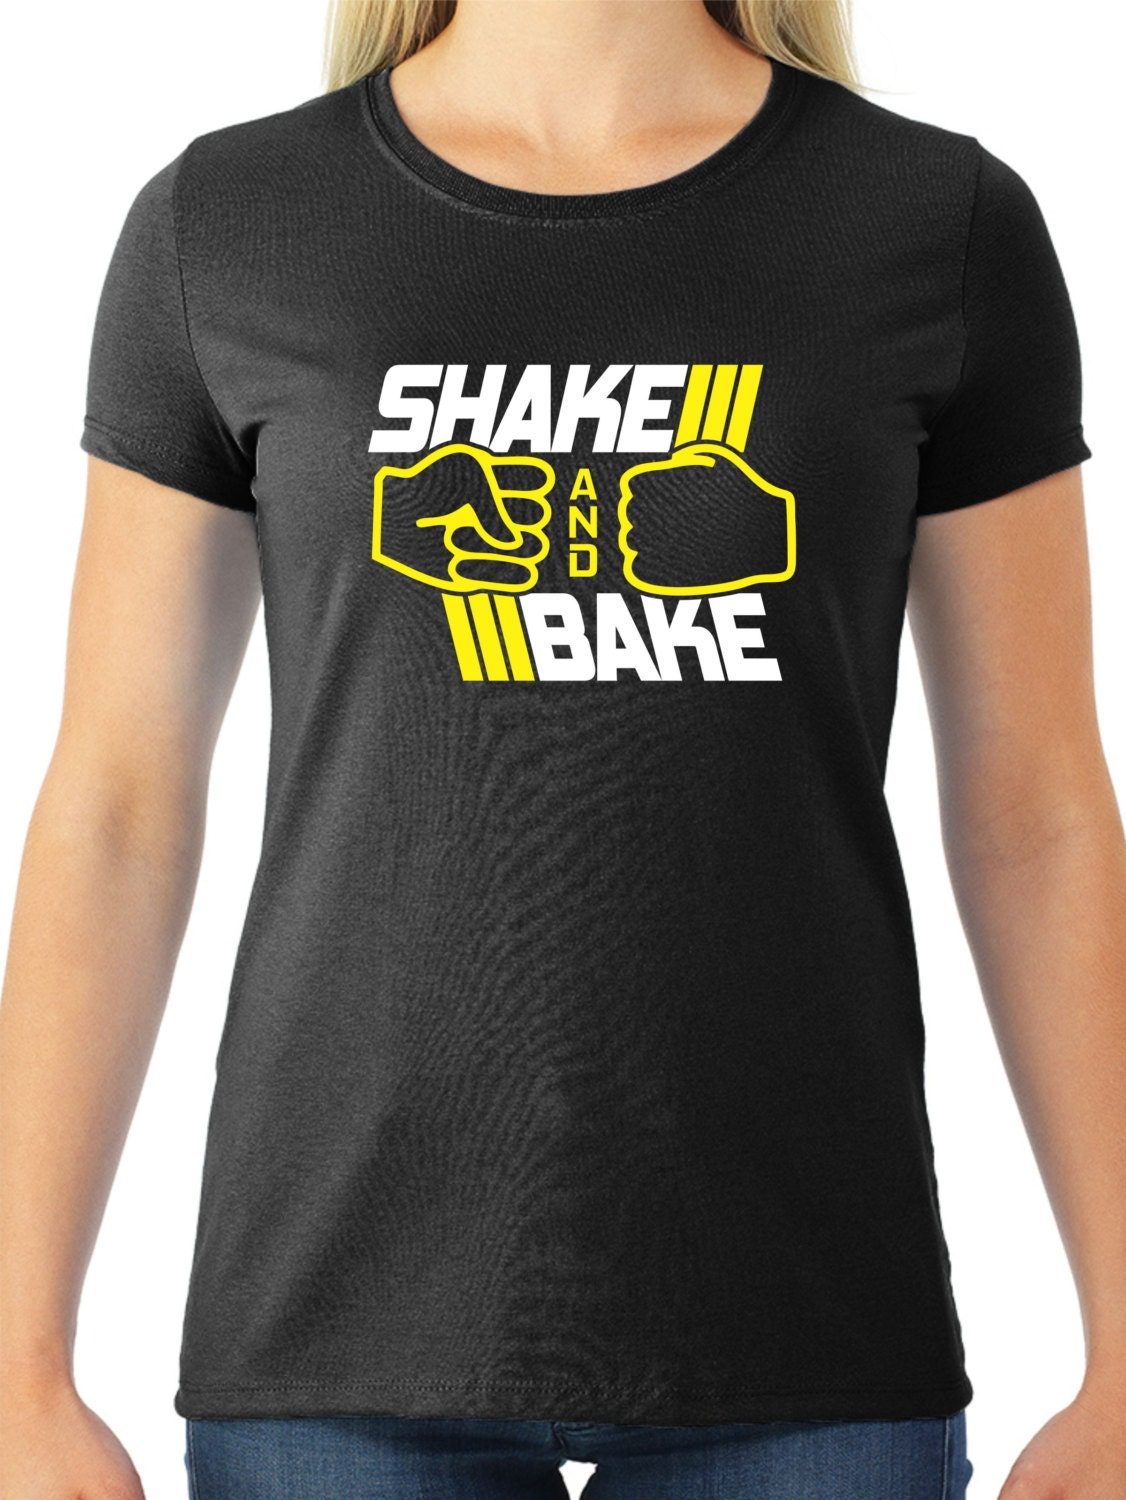 shake and bake talladega nights ricky bobby funny movie quote. Black Bedroom Furniture Sets. Home Design Ideas